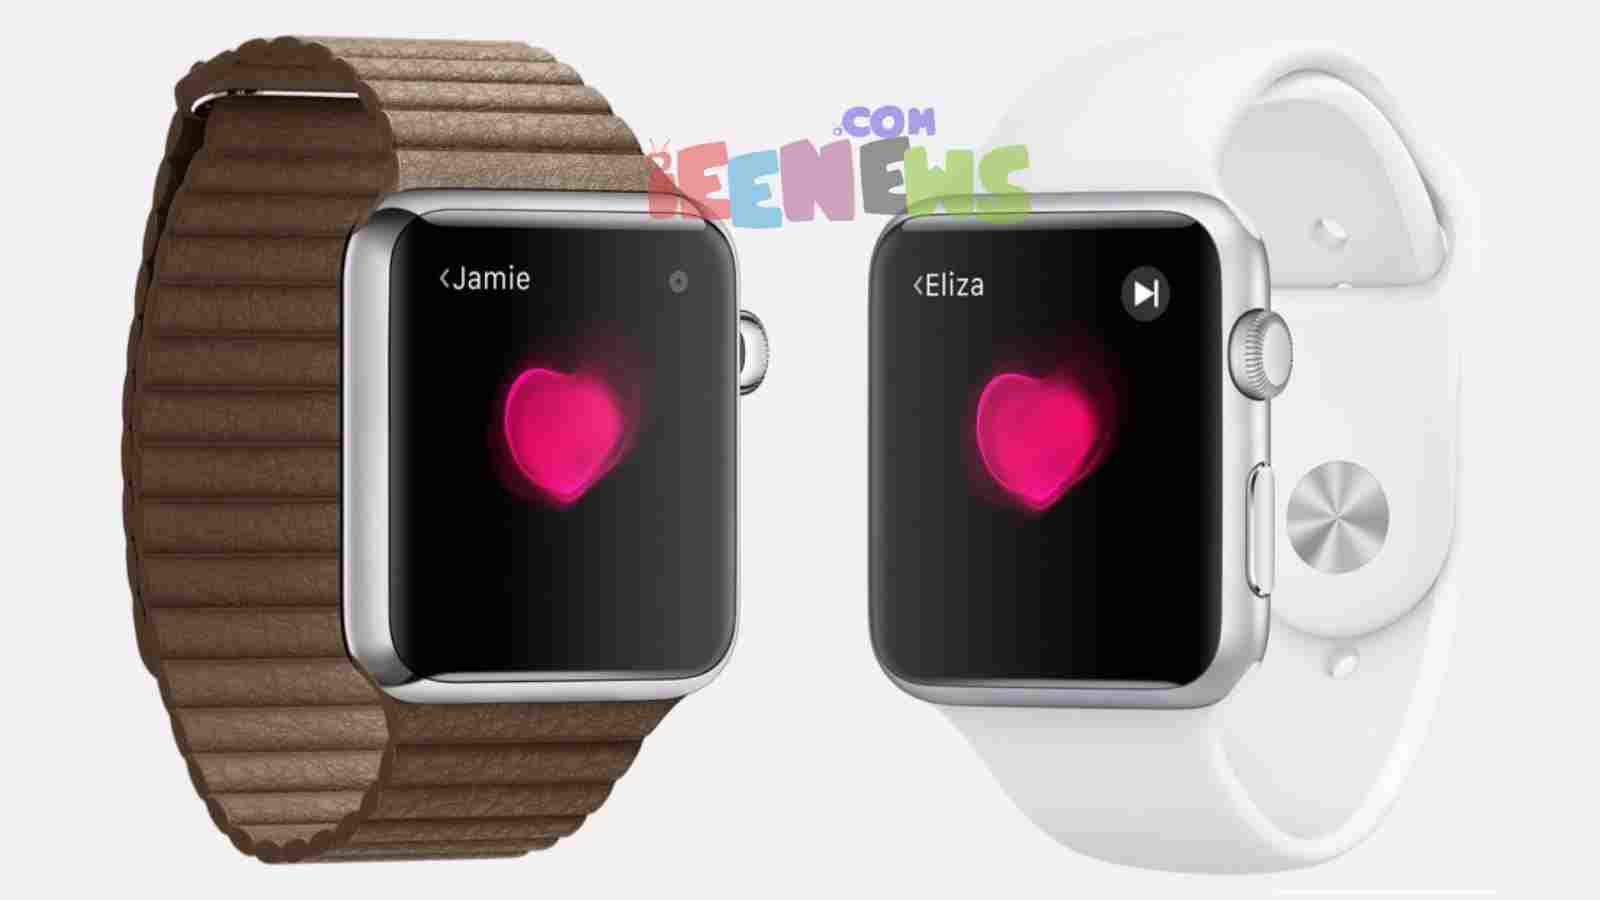 How do I share my heartbeat on the Apple Watch